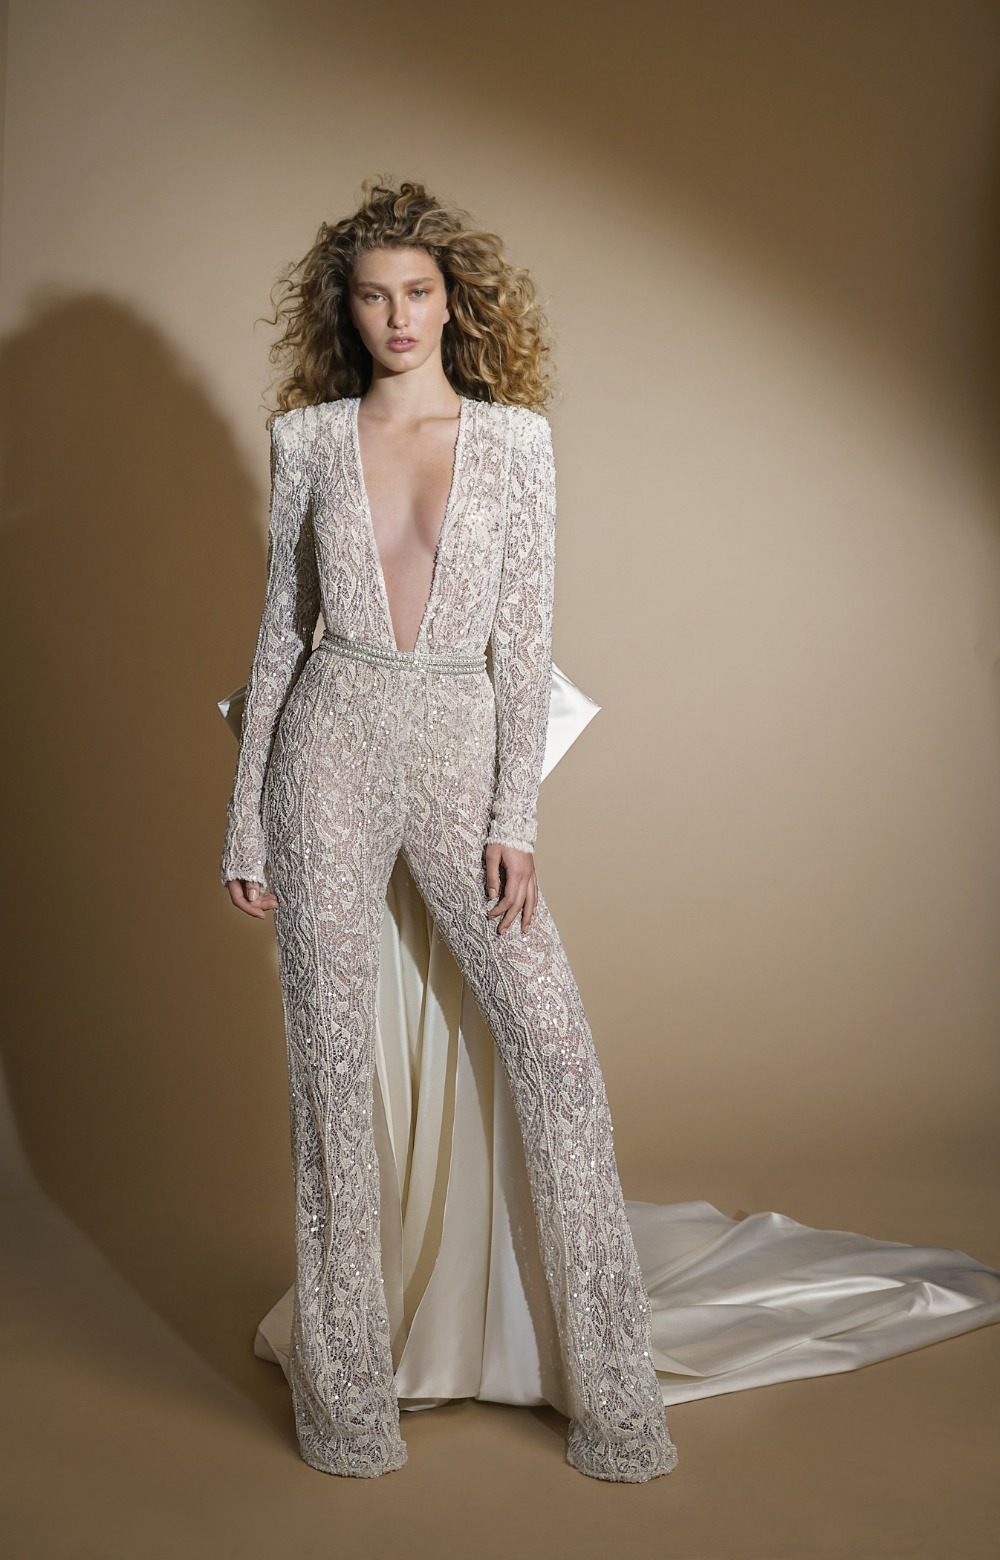 glamorous tailored jumpsuit with accentuated shoulders from Galia Lahav